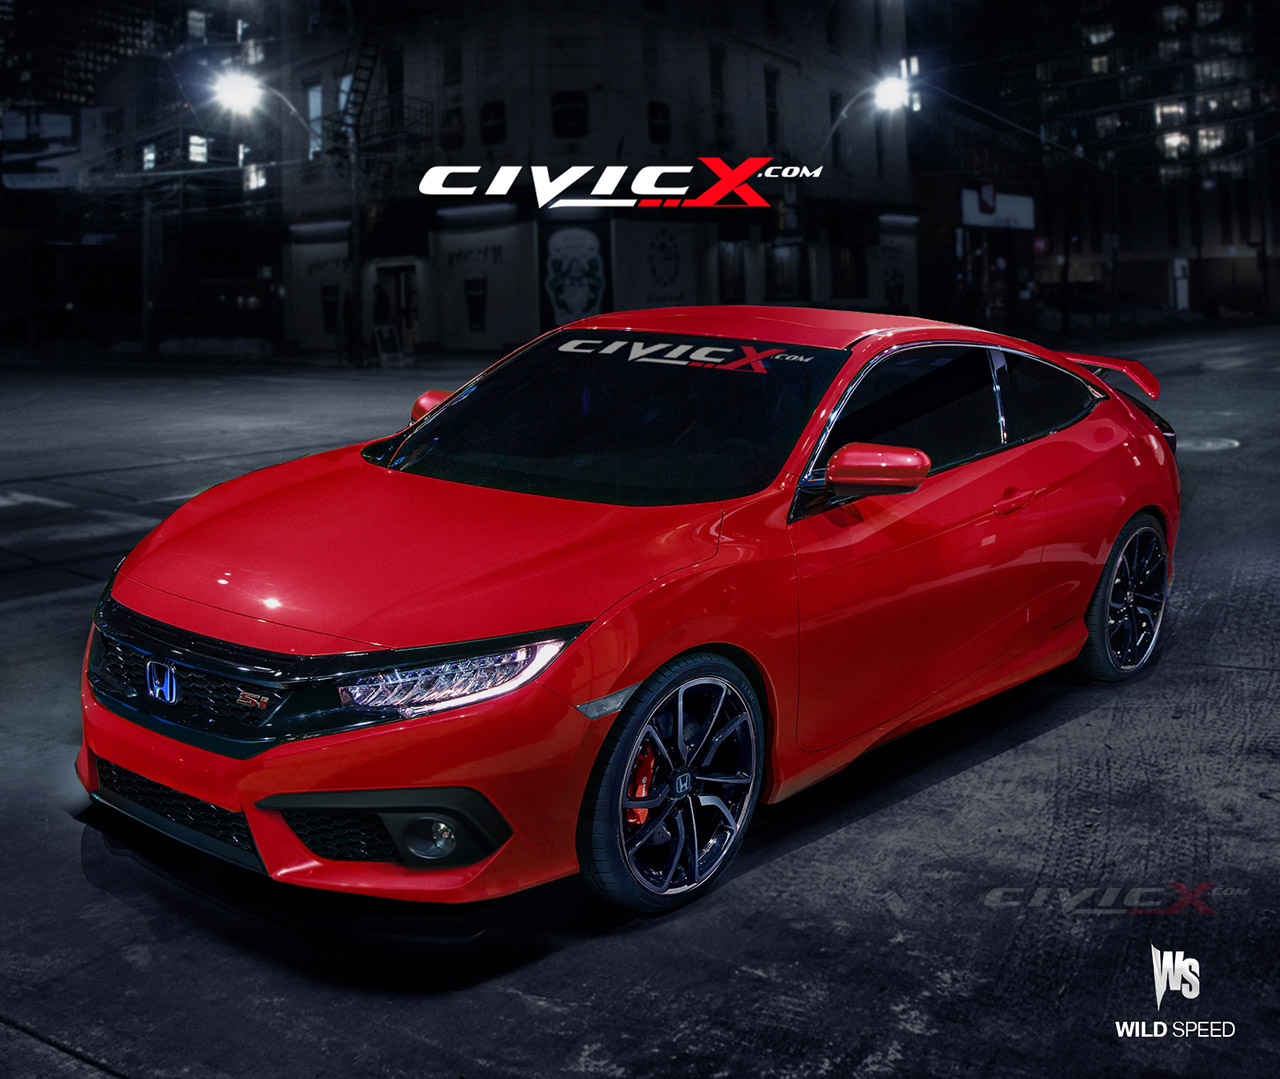 civicx_civic-si_red3-jpg.jpg